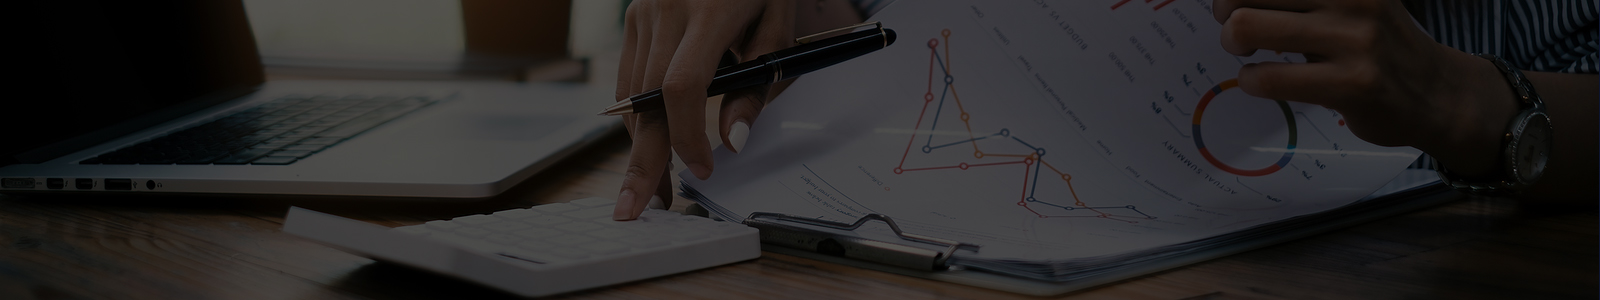 Outsourcing SMSF Accounting Services